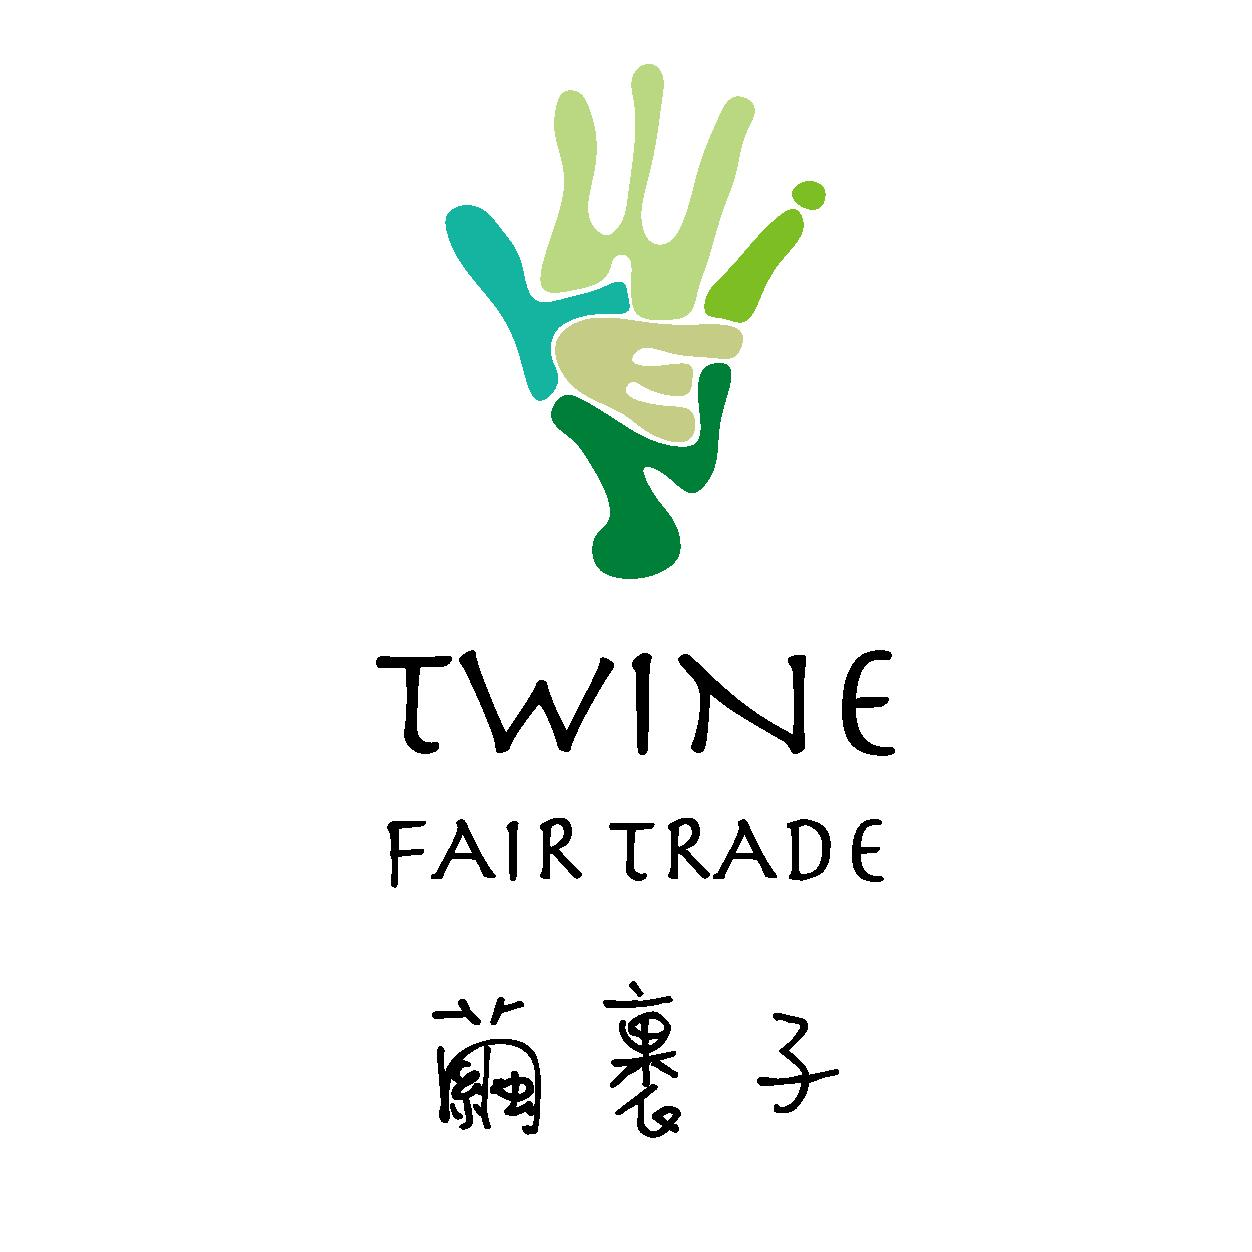 Twine Fair Trade Company logo